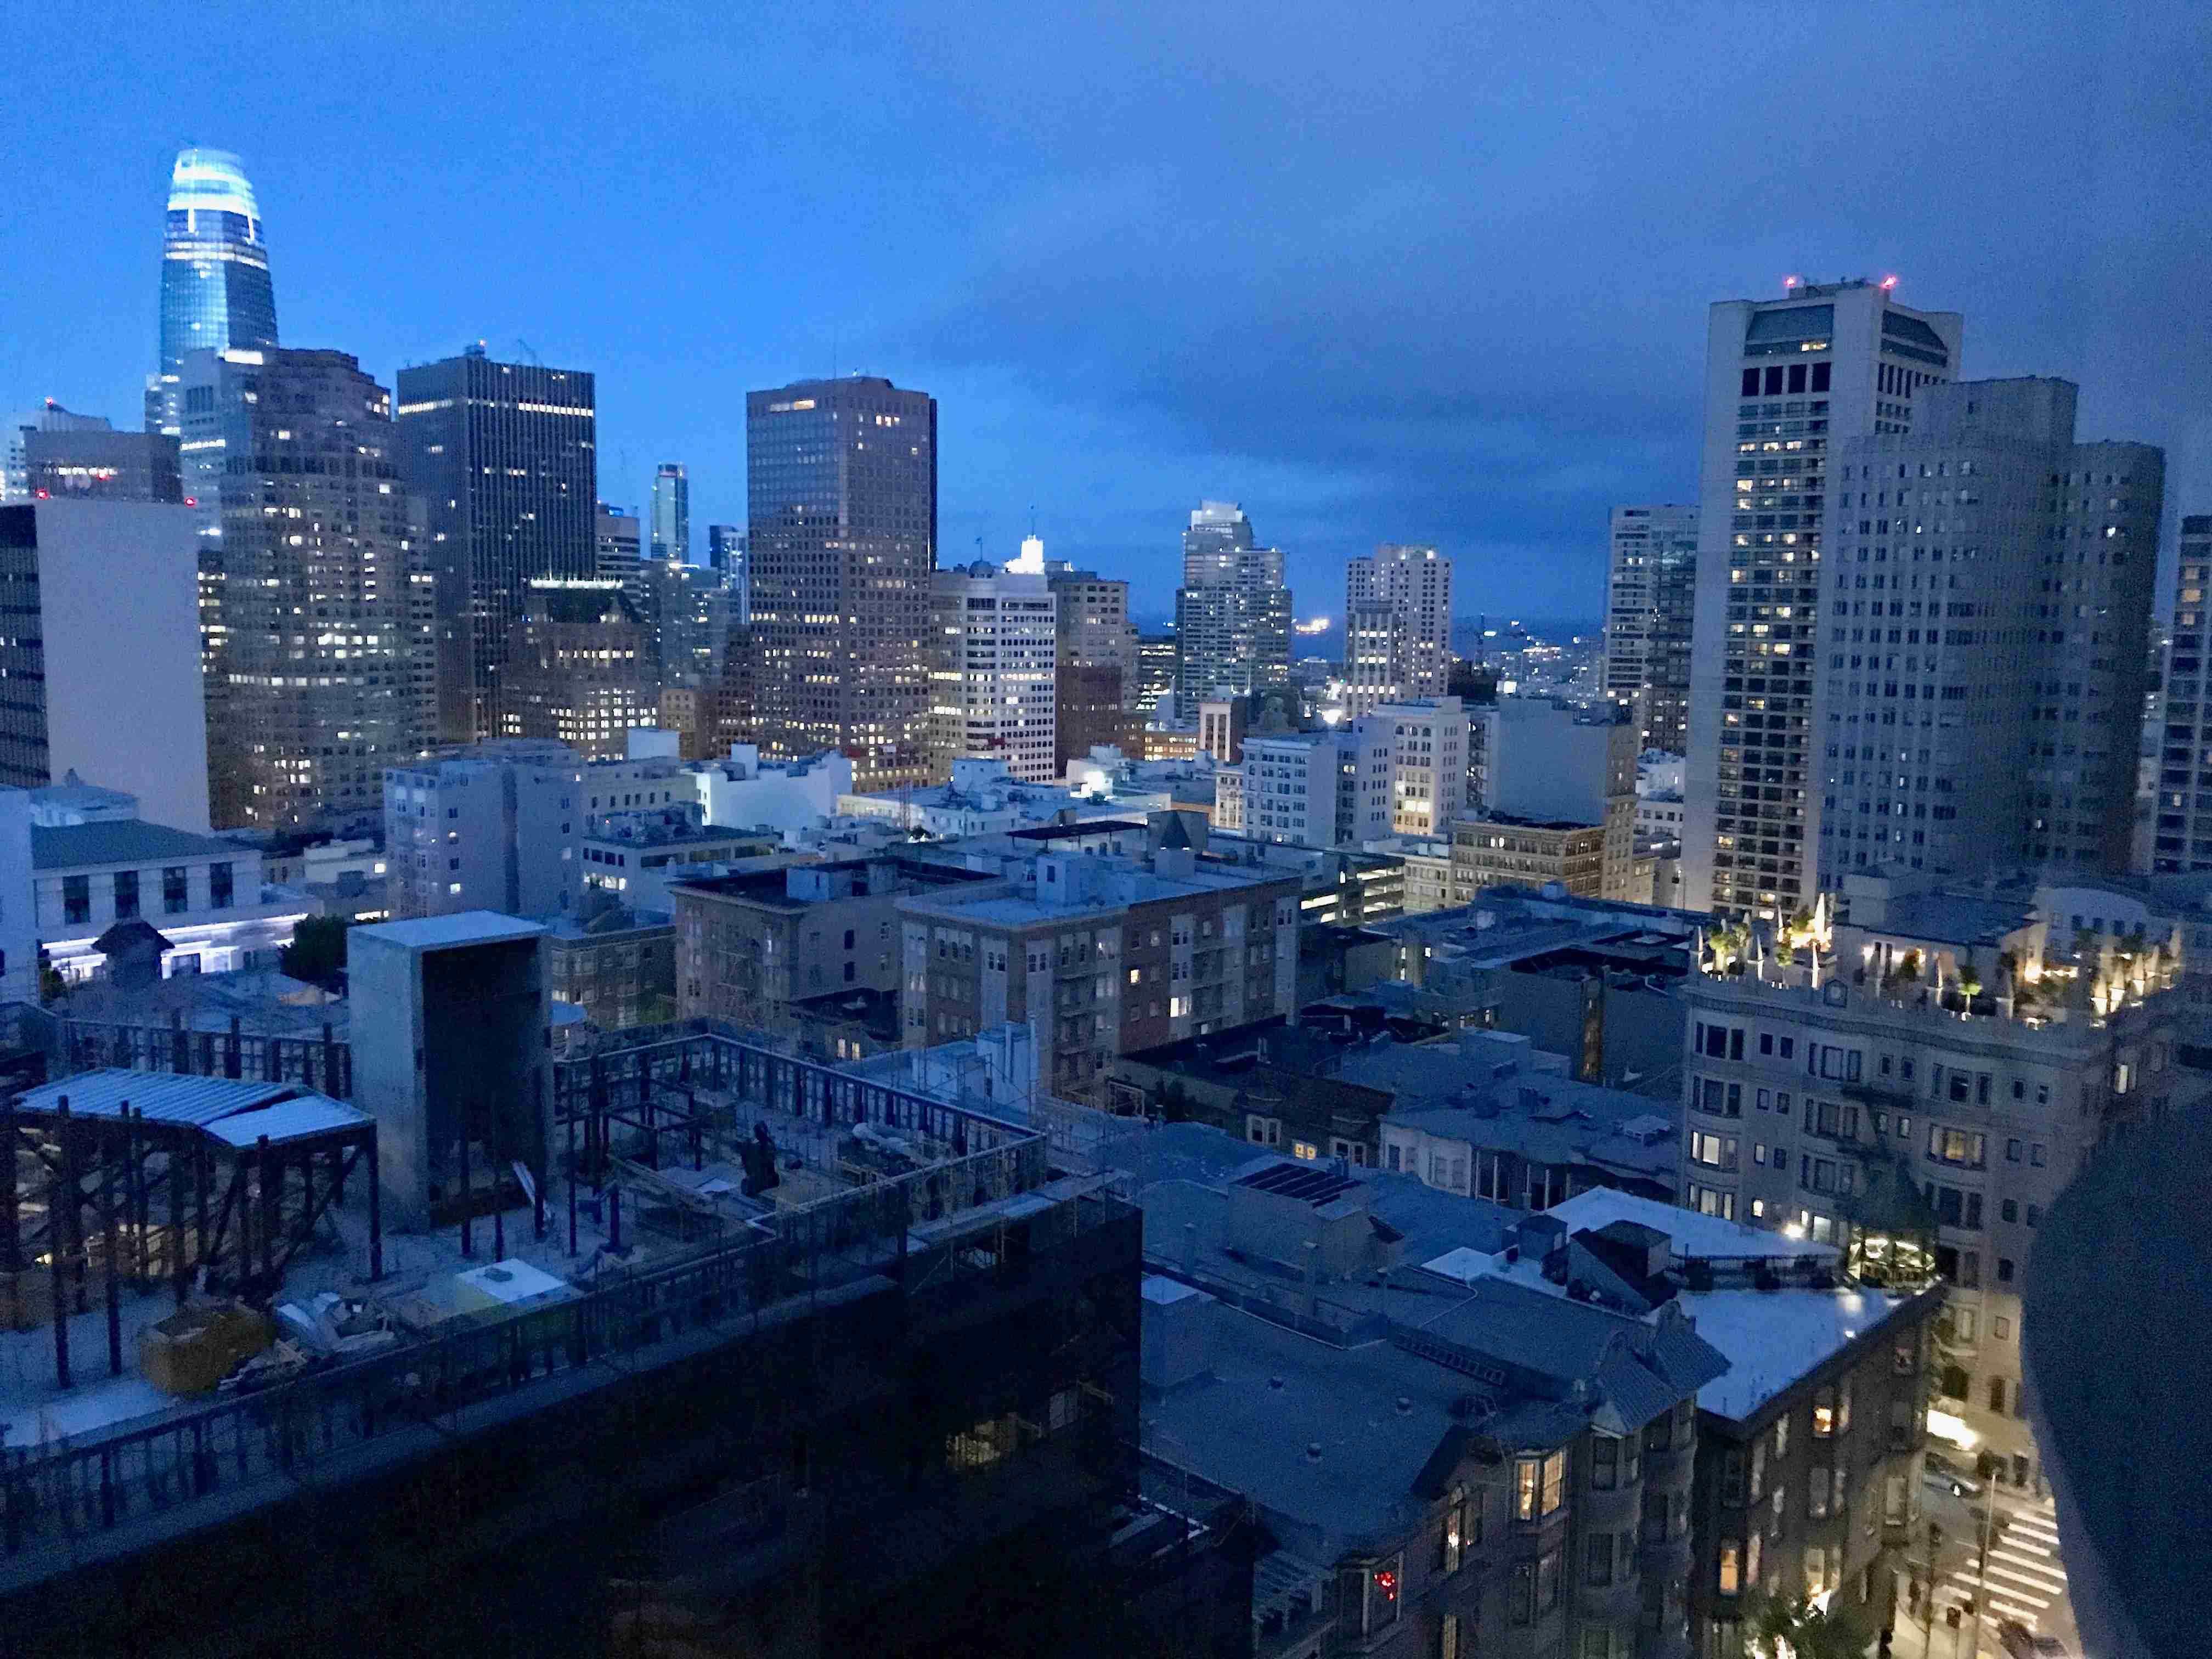 Amazing view from the Stanford Court Hotel atop Nob Hill in San Francisco